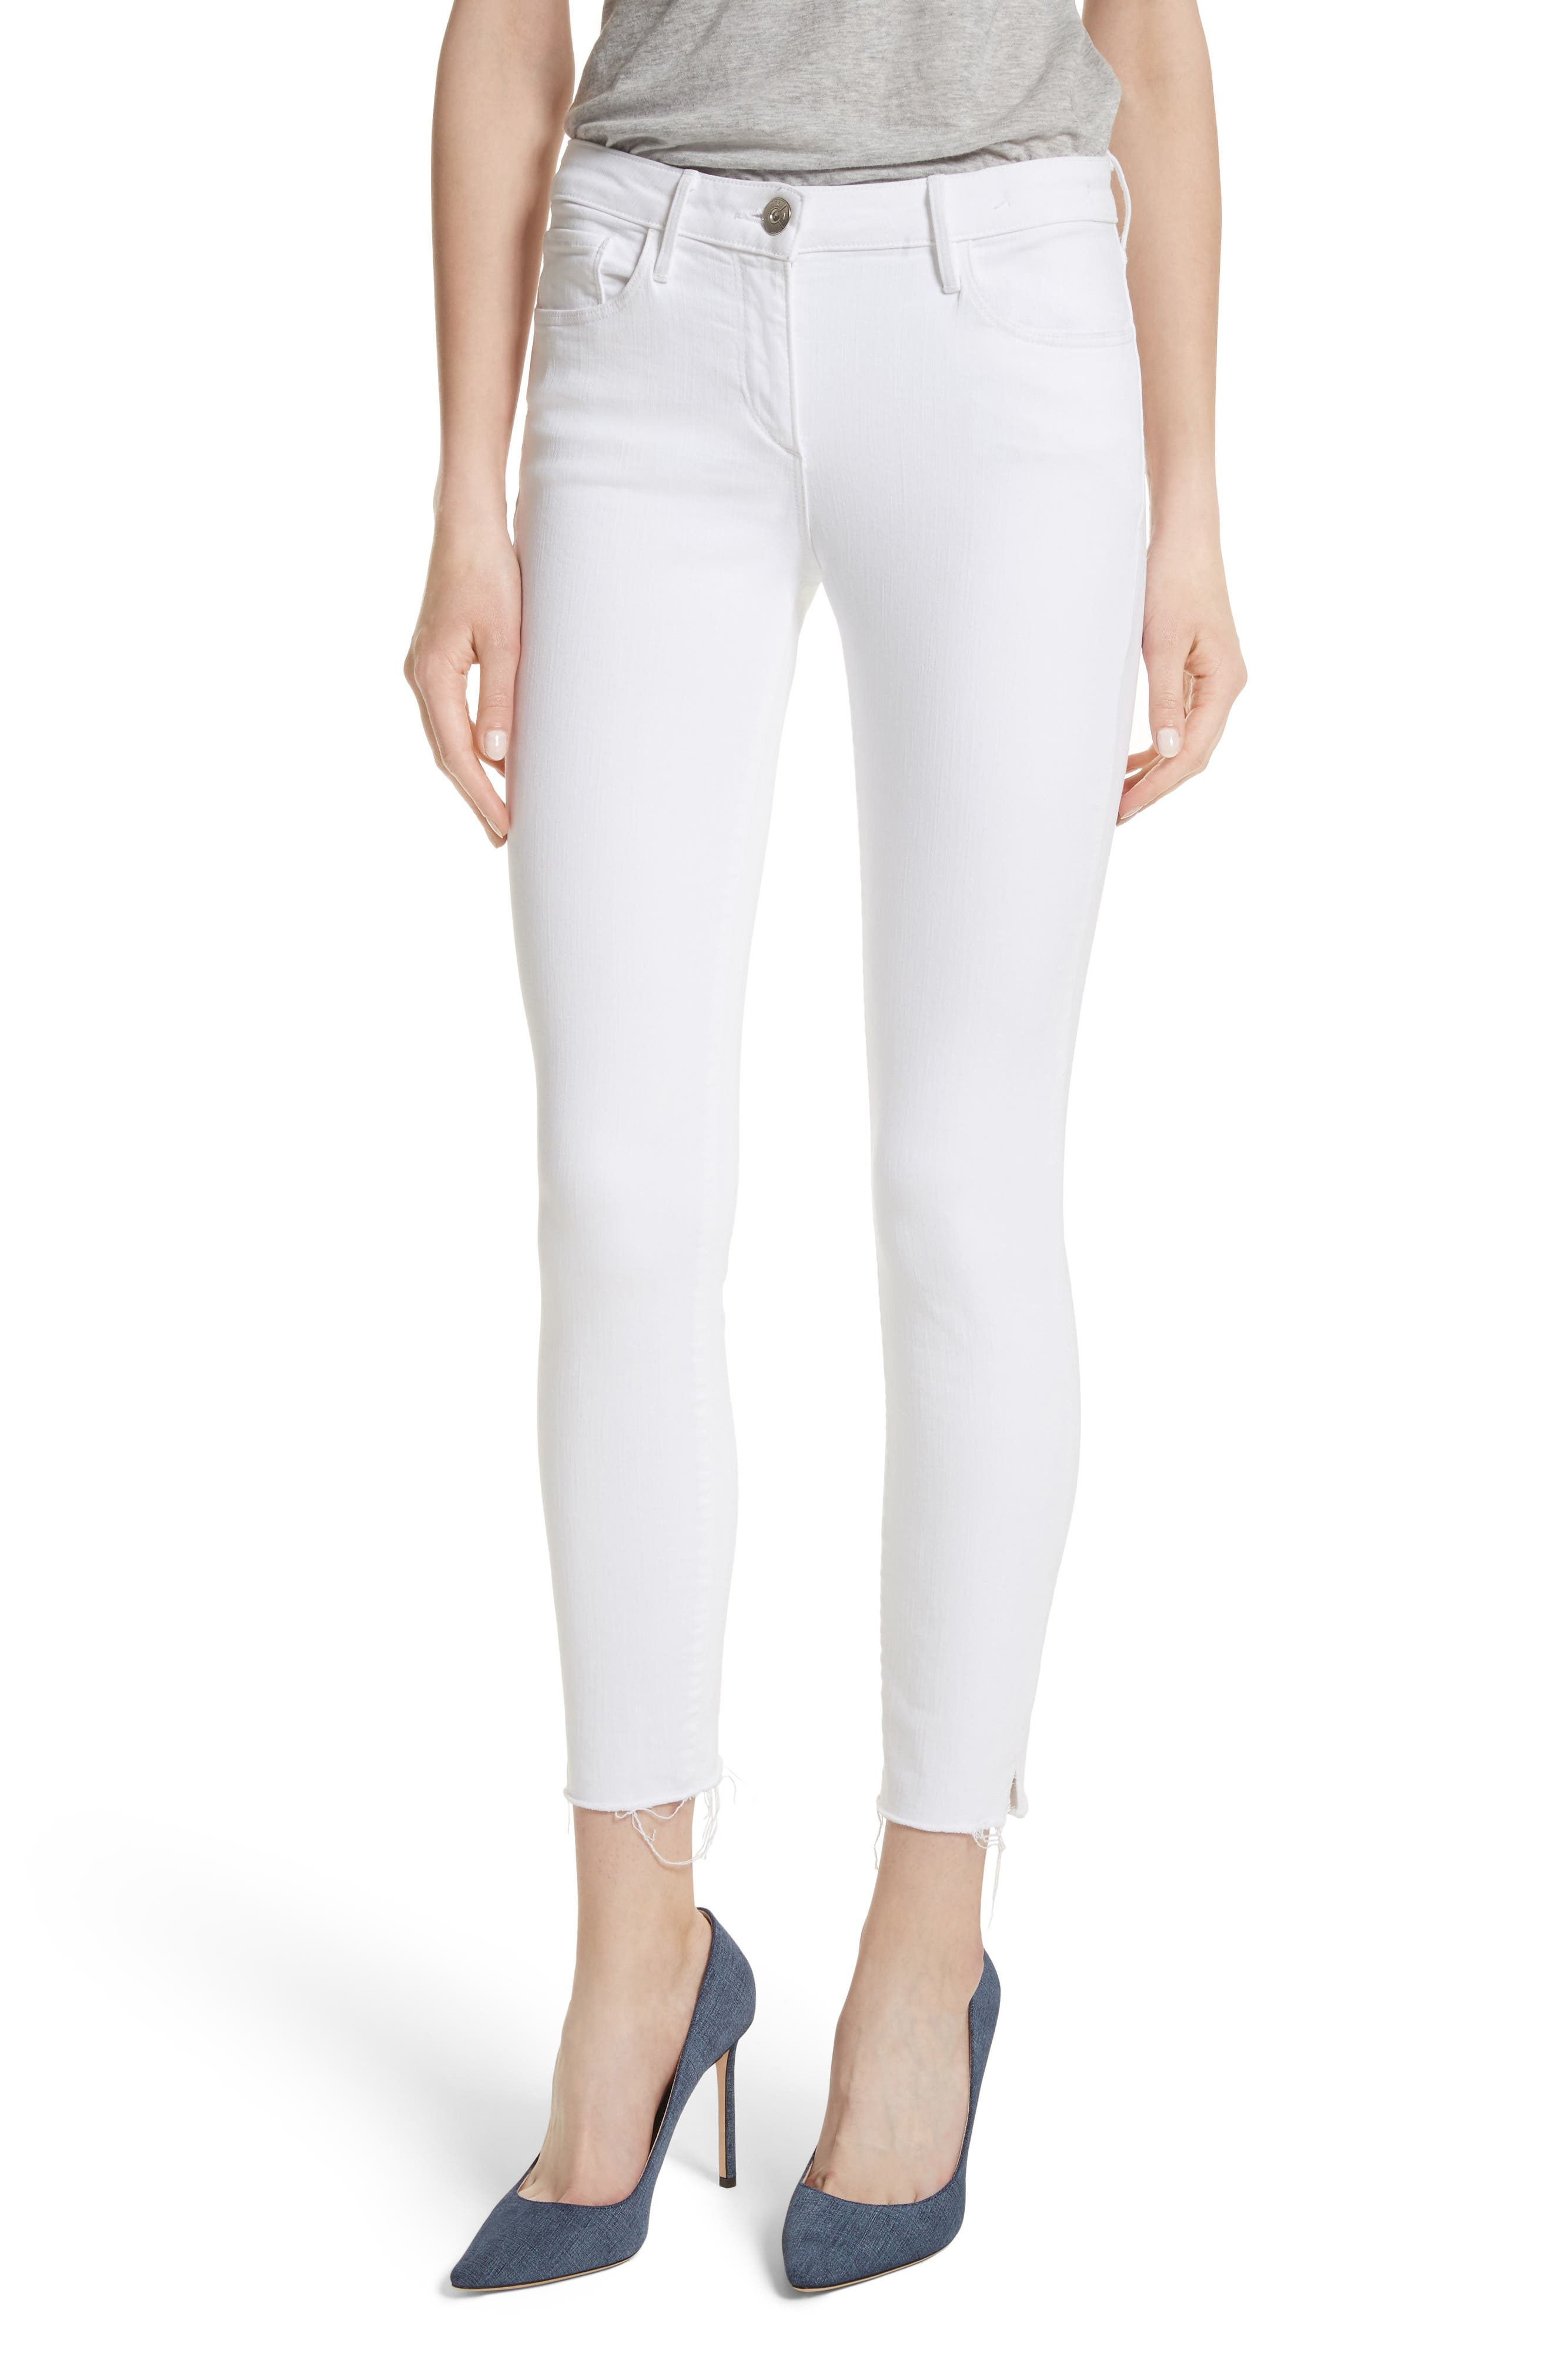 W2 Crop Skinny Jeans,                         Main,                         color, White Tear